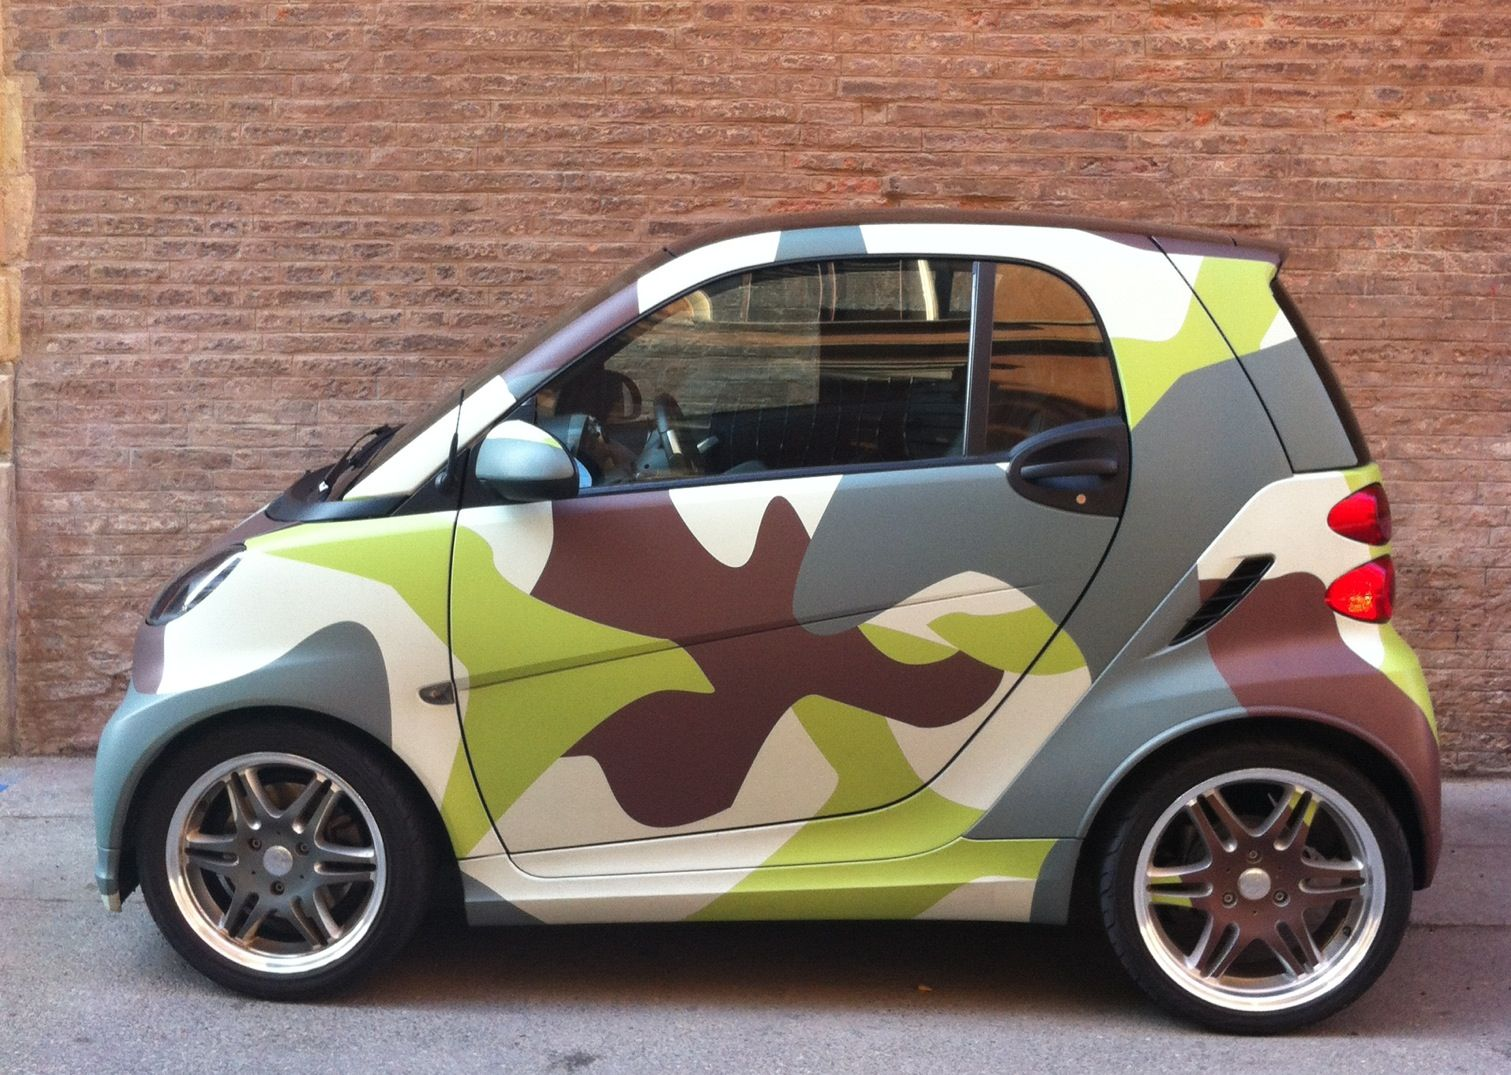 Smart car | cars & bikes | Pinterest | Smart car, Cars and ...